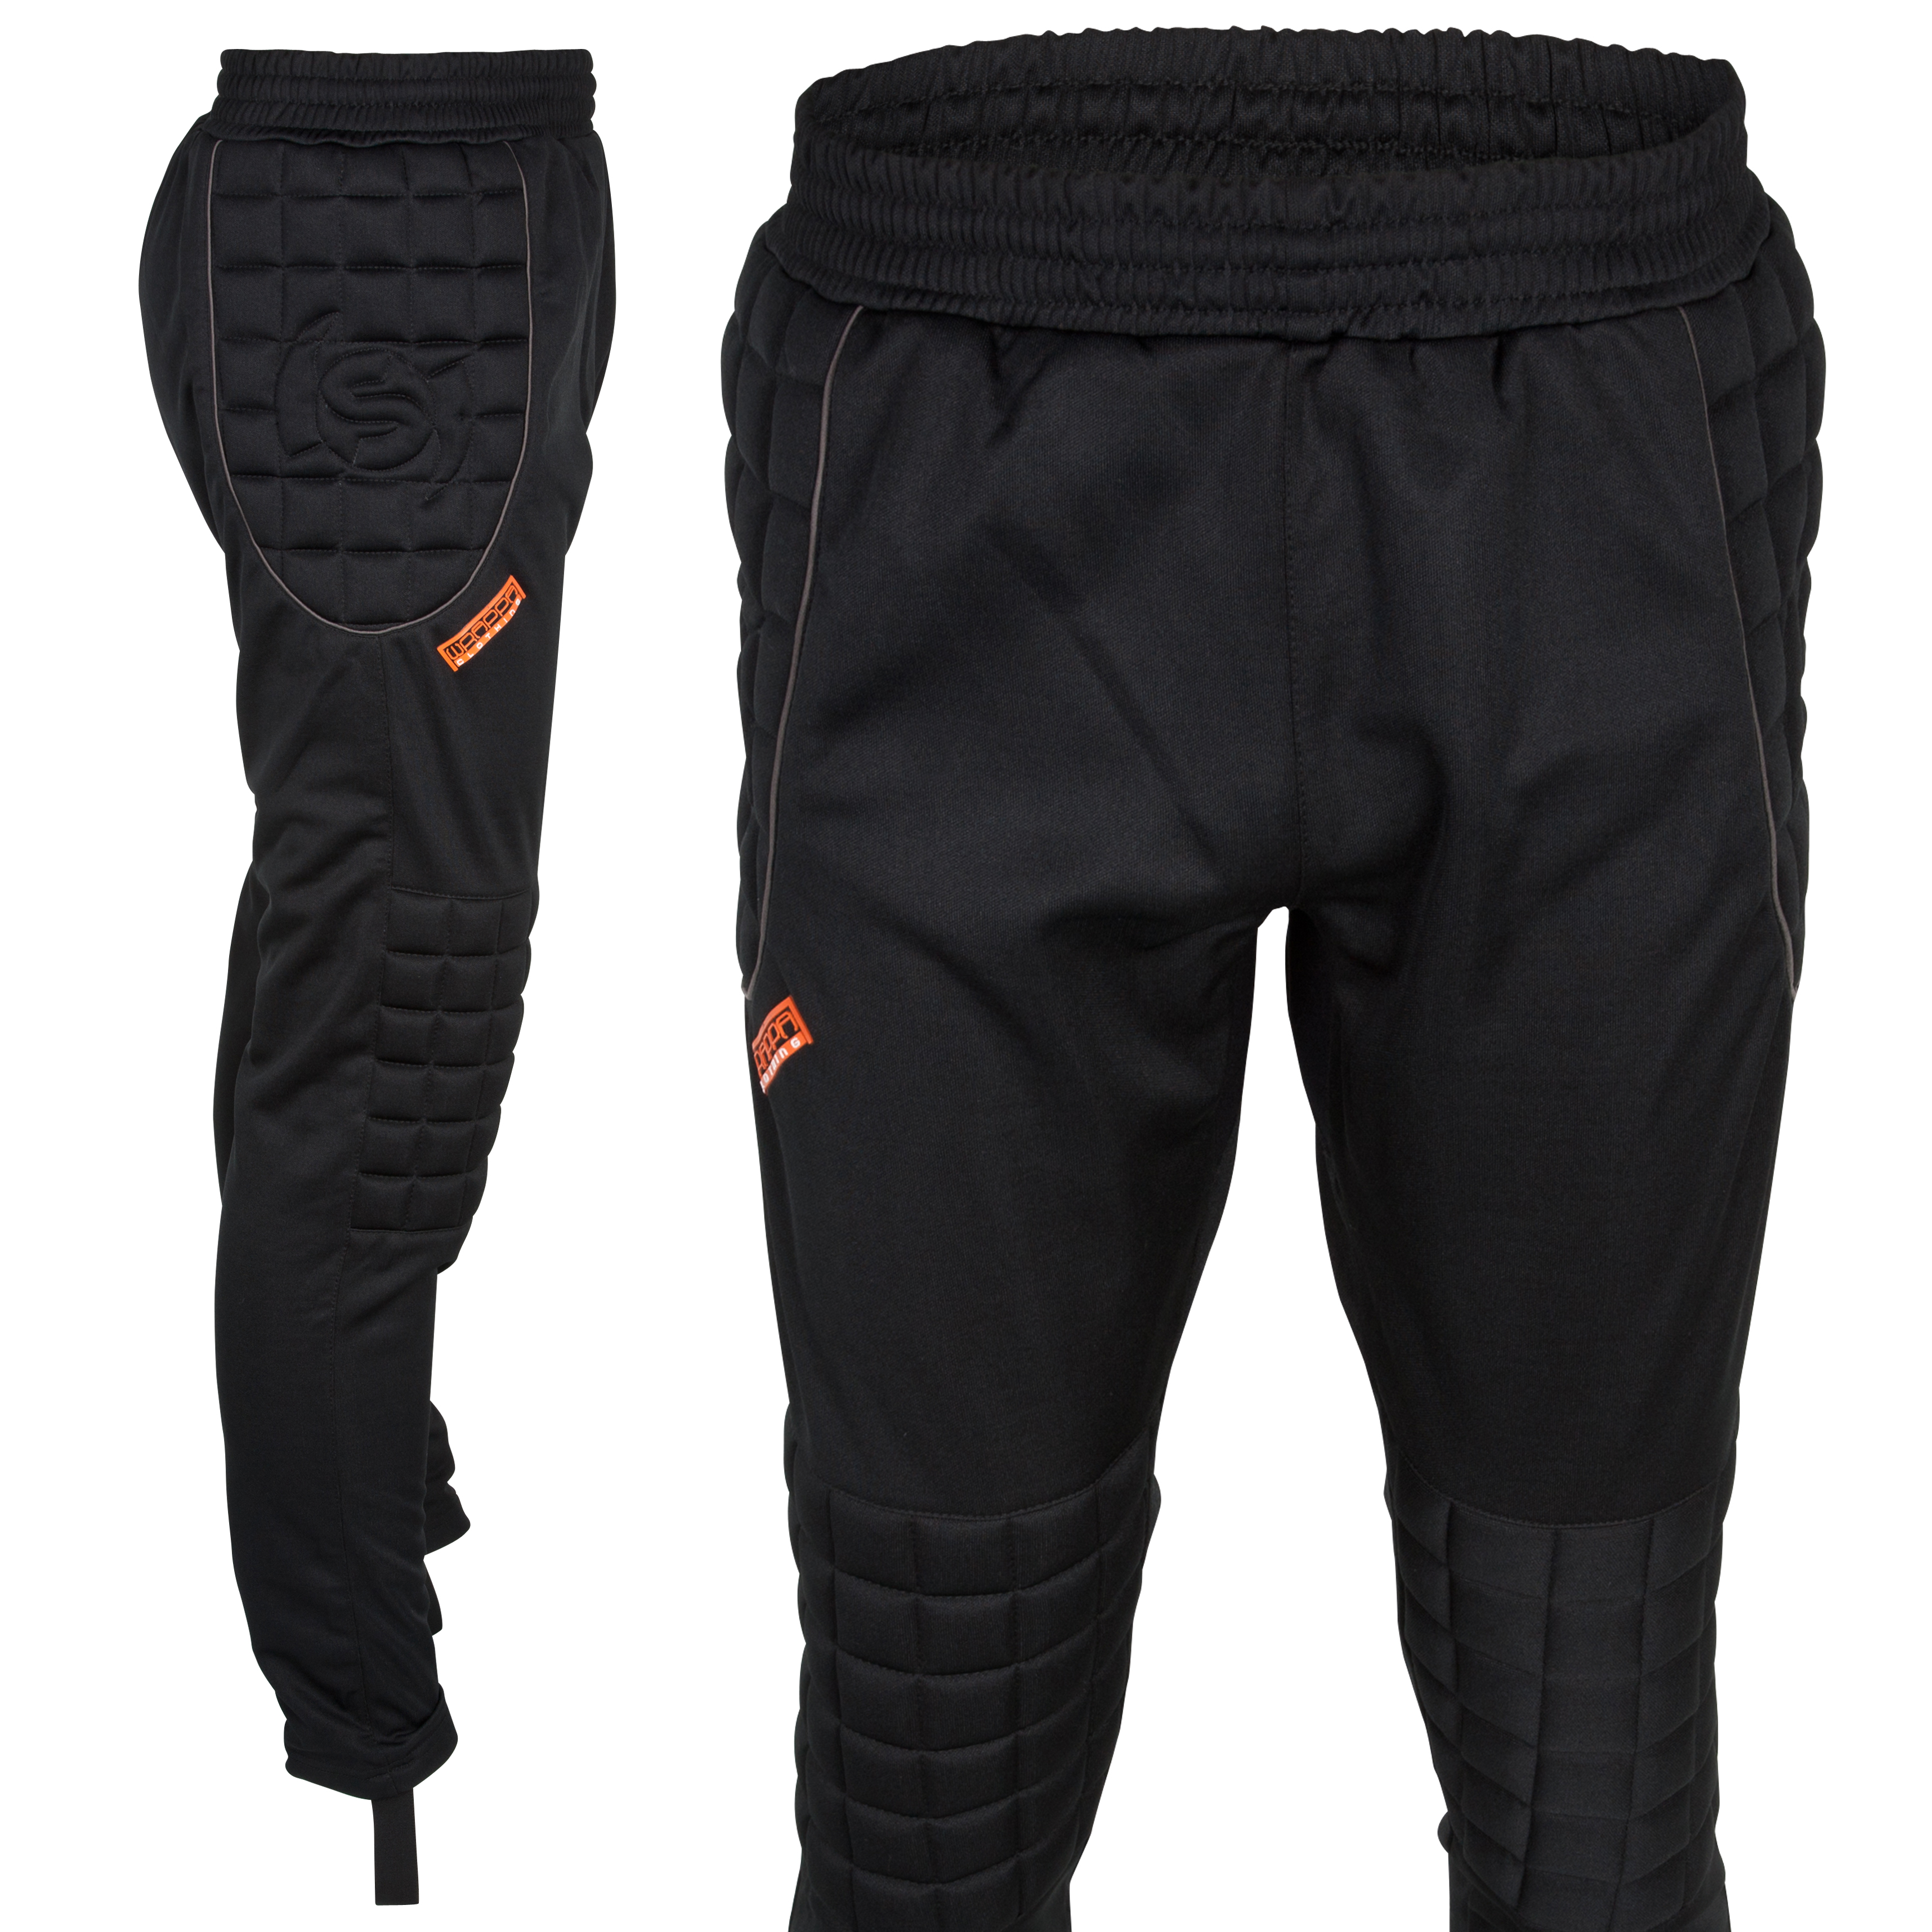 Selsport Goalkeeper Full Length Trousers